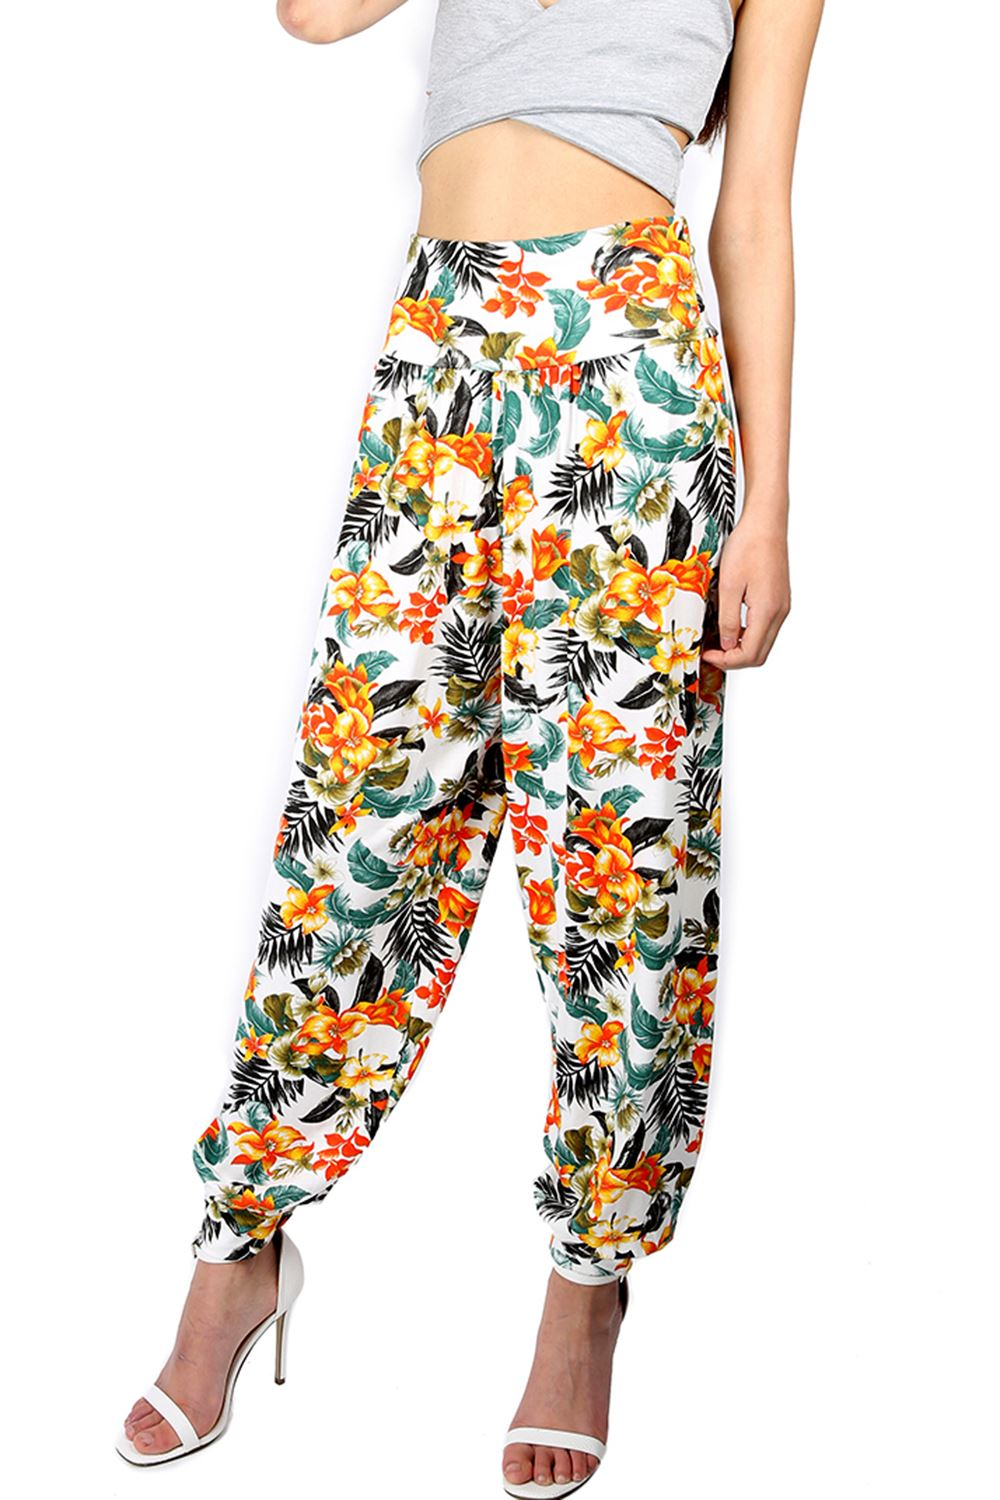 ea2e6c38622 Excellent Womens Printed Harem Pants Cuffed Bottom Ladies Ali Baba Trousers  Plus Size 8